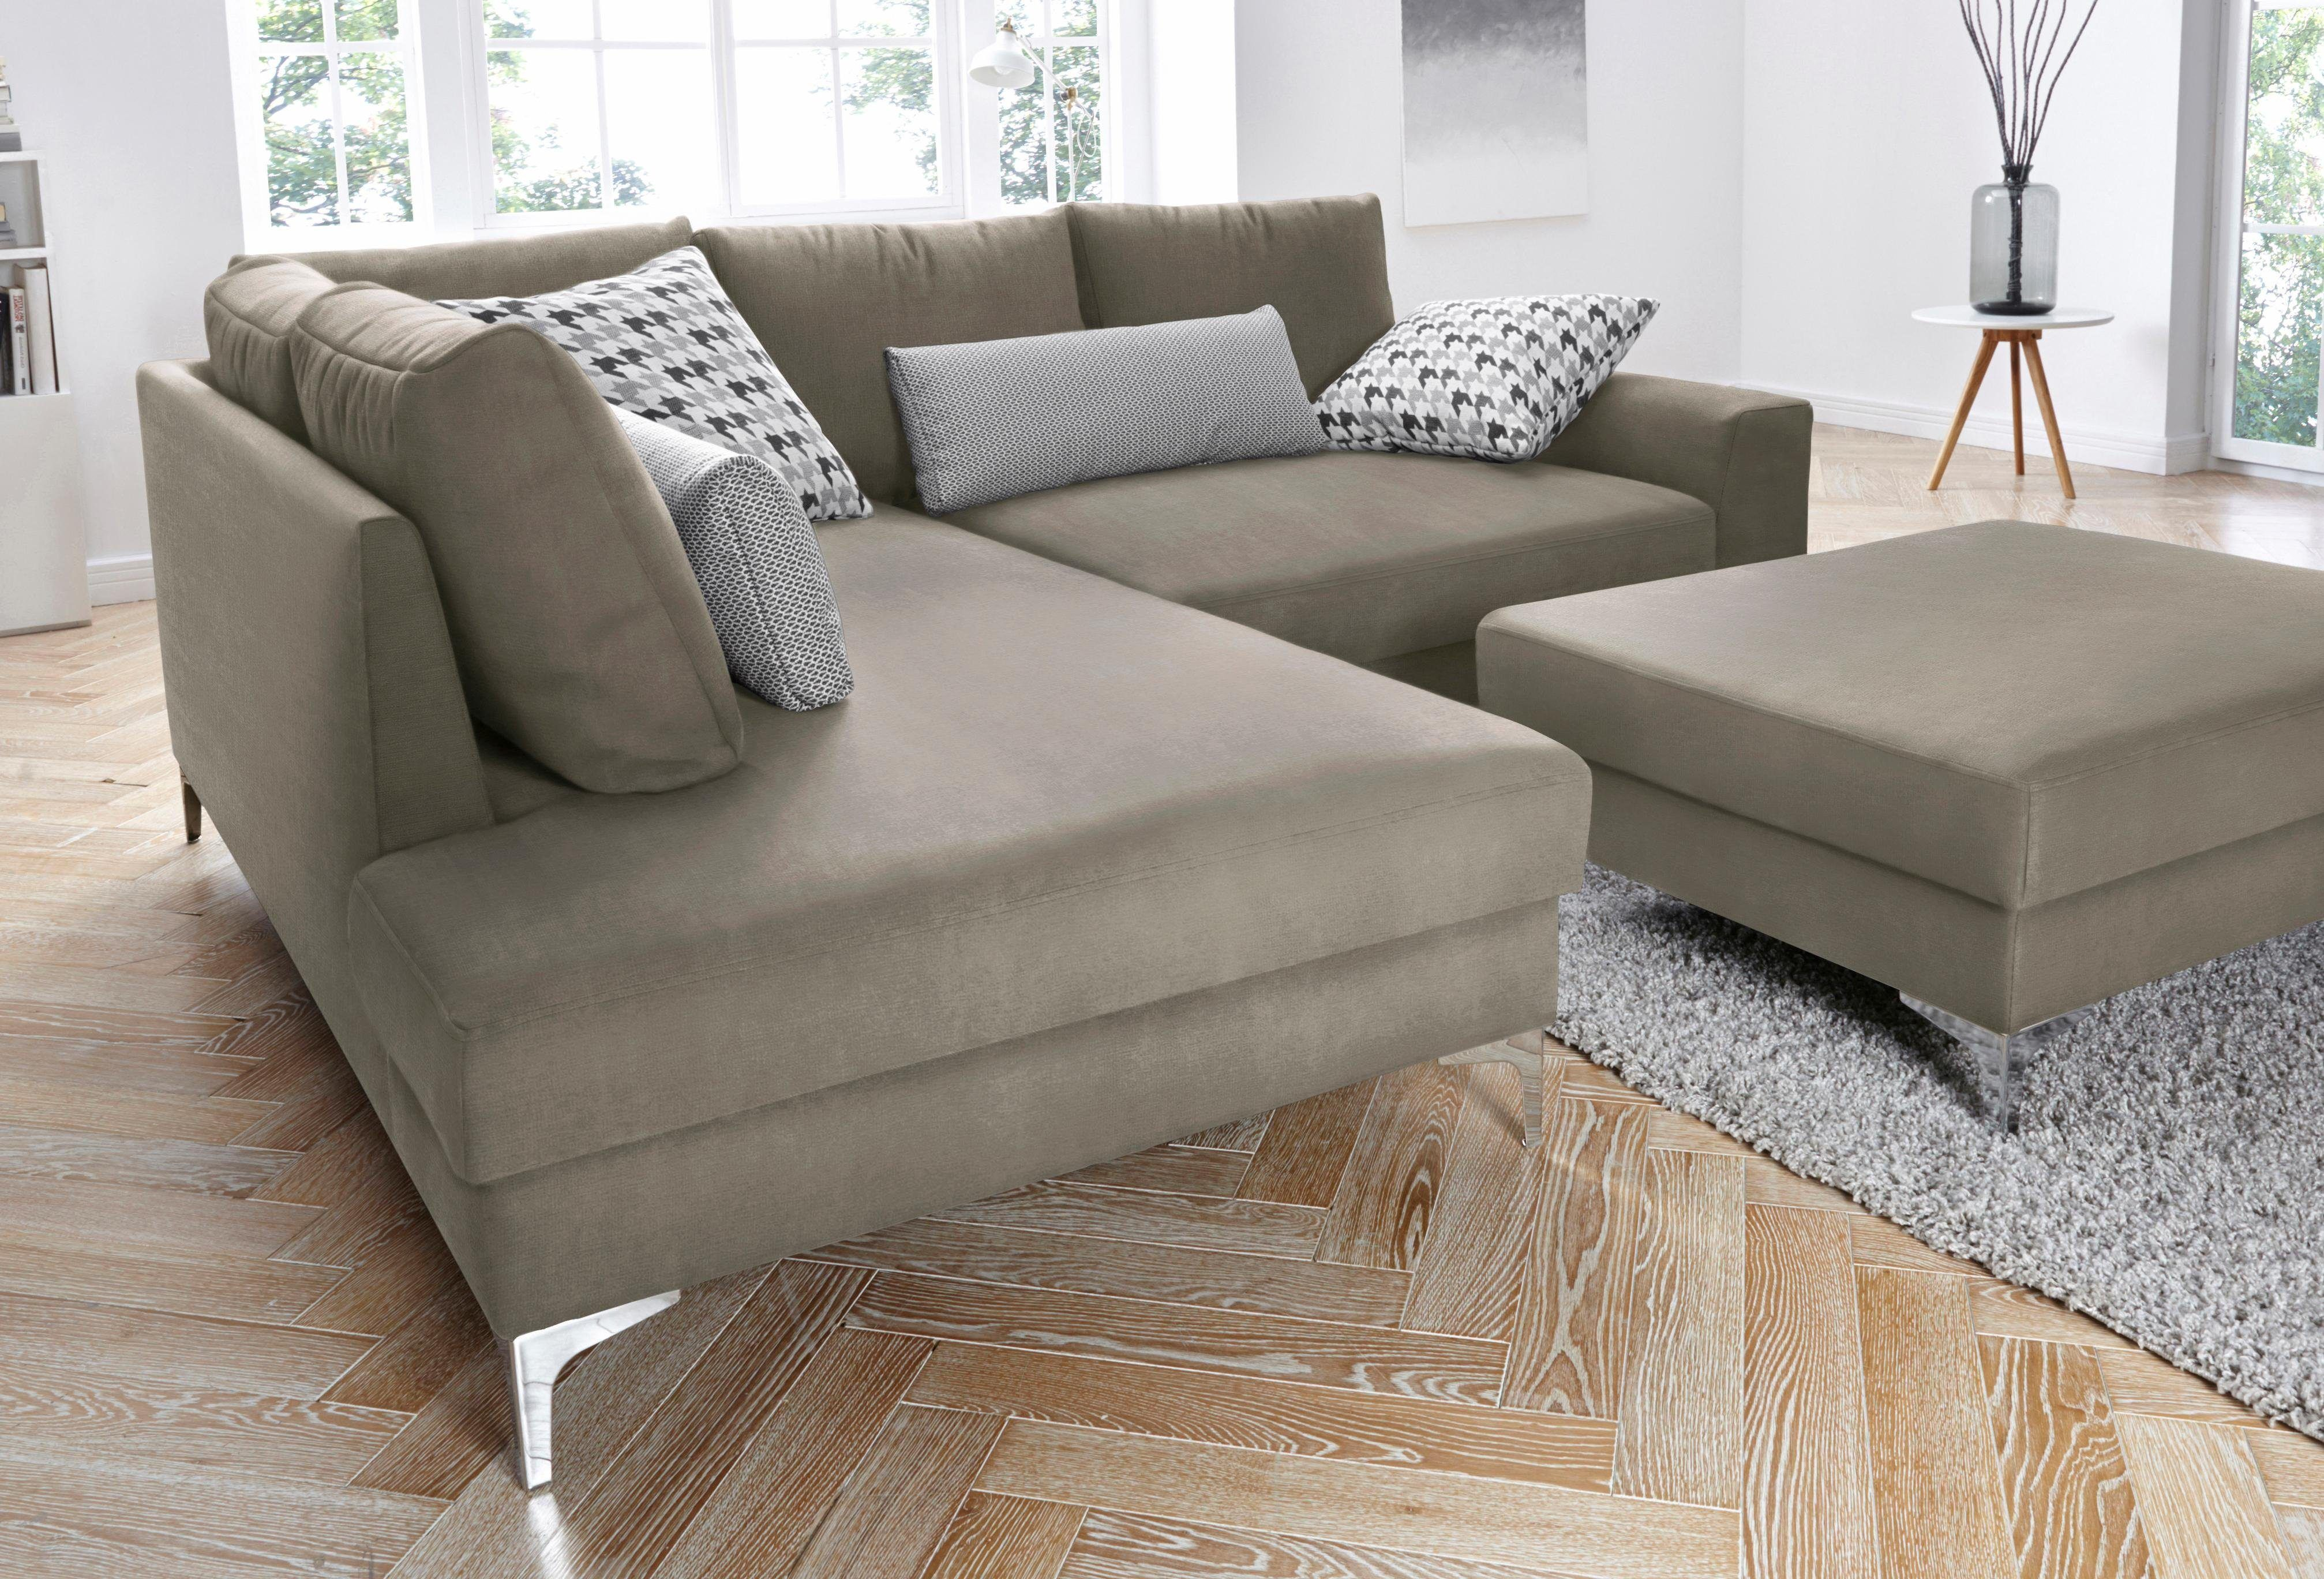 Rundecke Sofa Big Sofa Rundecke Cool Otto Big Sofa Sale Elegant Big Sofa Mit